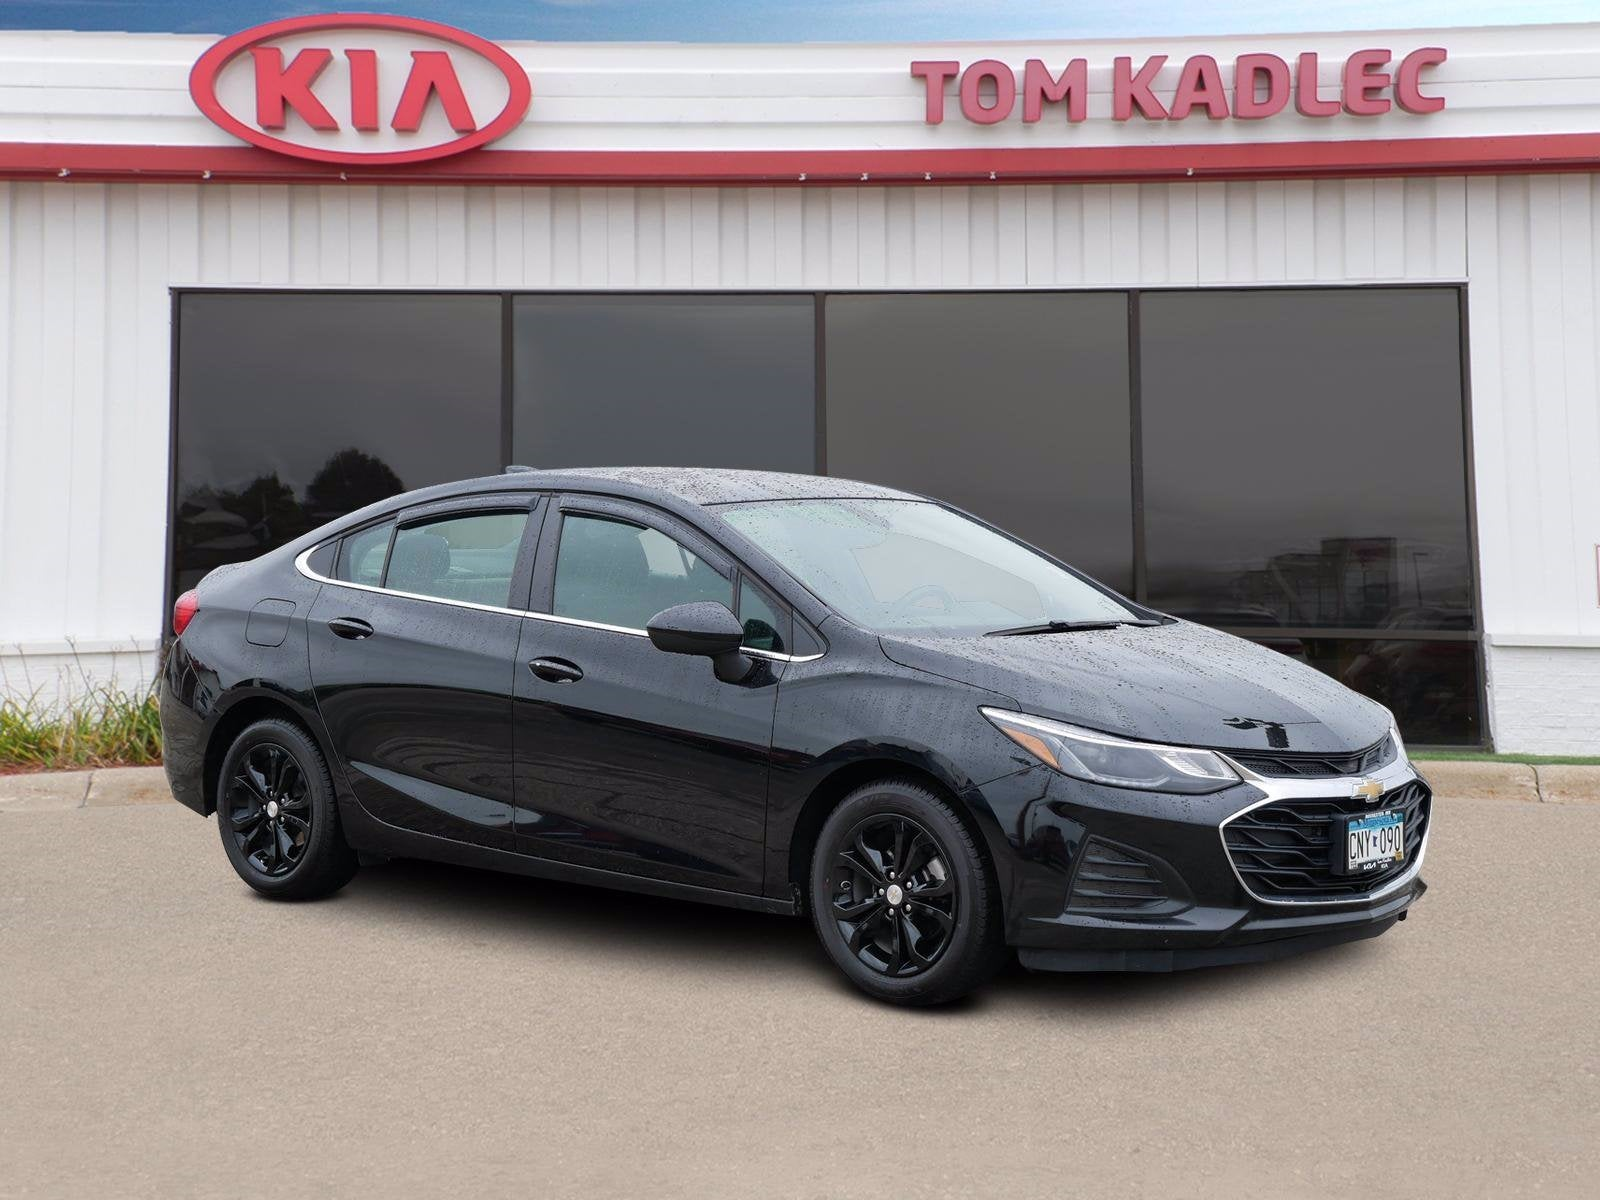 Used 2019 Chevrolet Cruze LT with VIN 1G1BE5SMXK7117384 for sale in Rochester, Minnesota